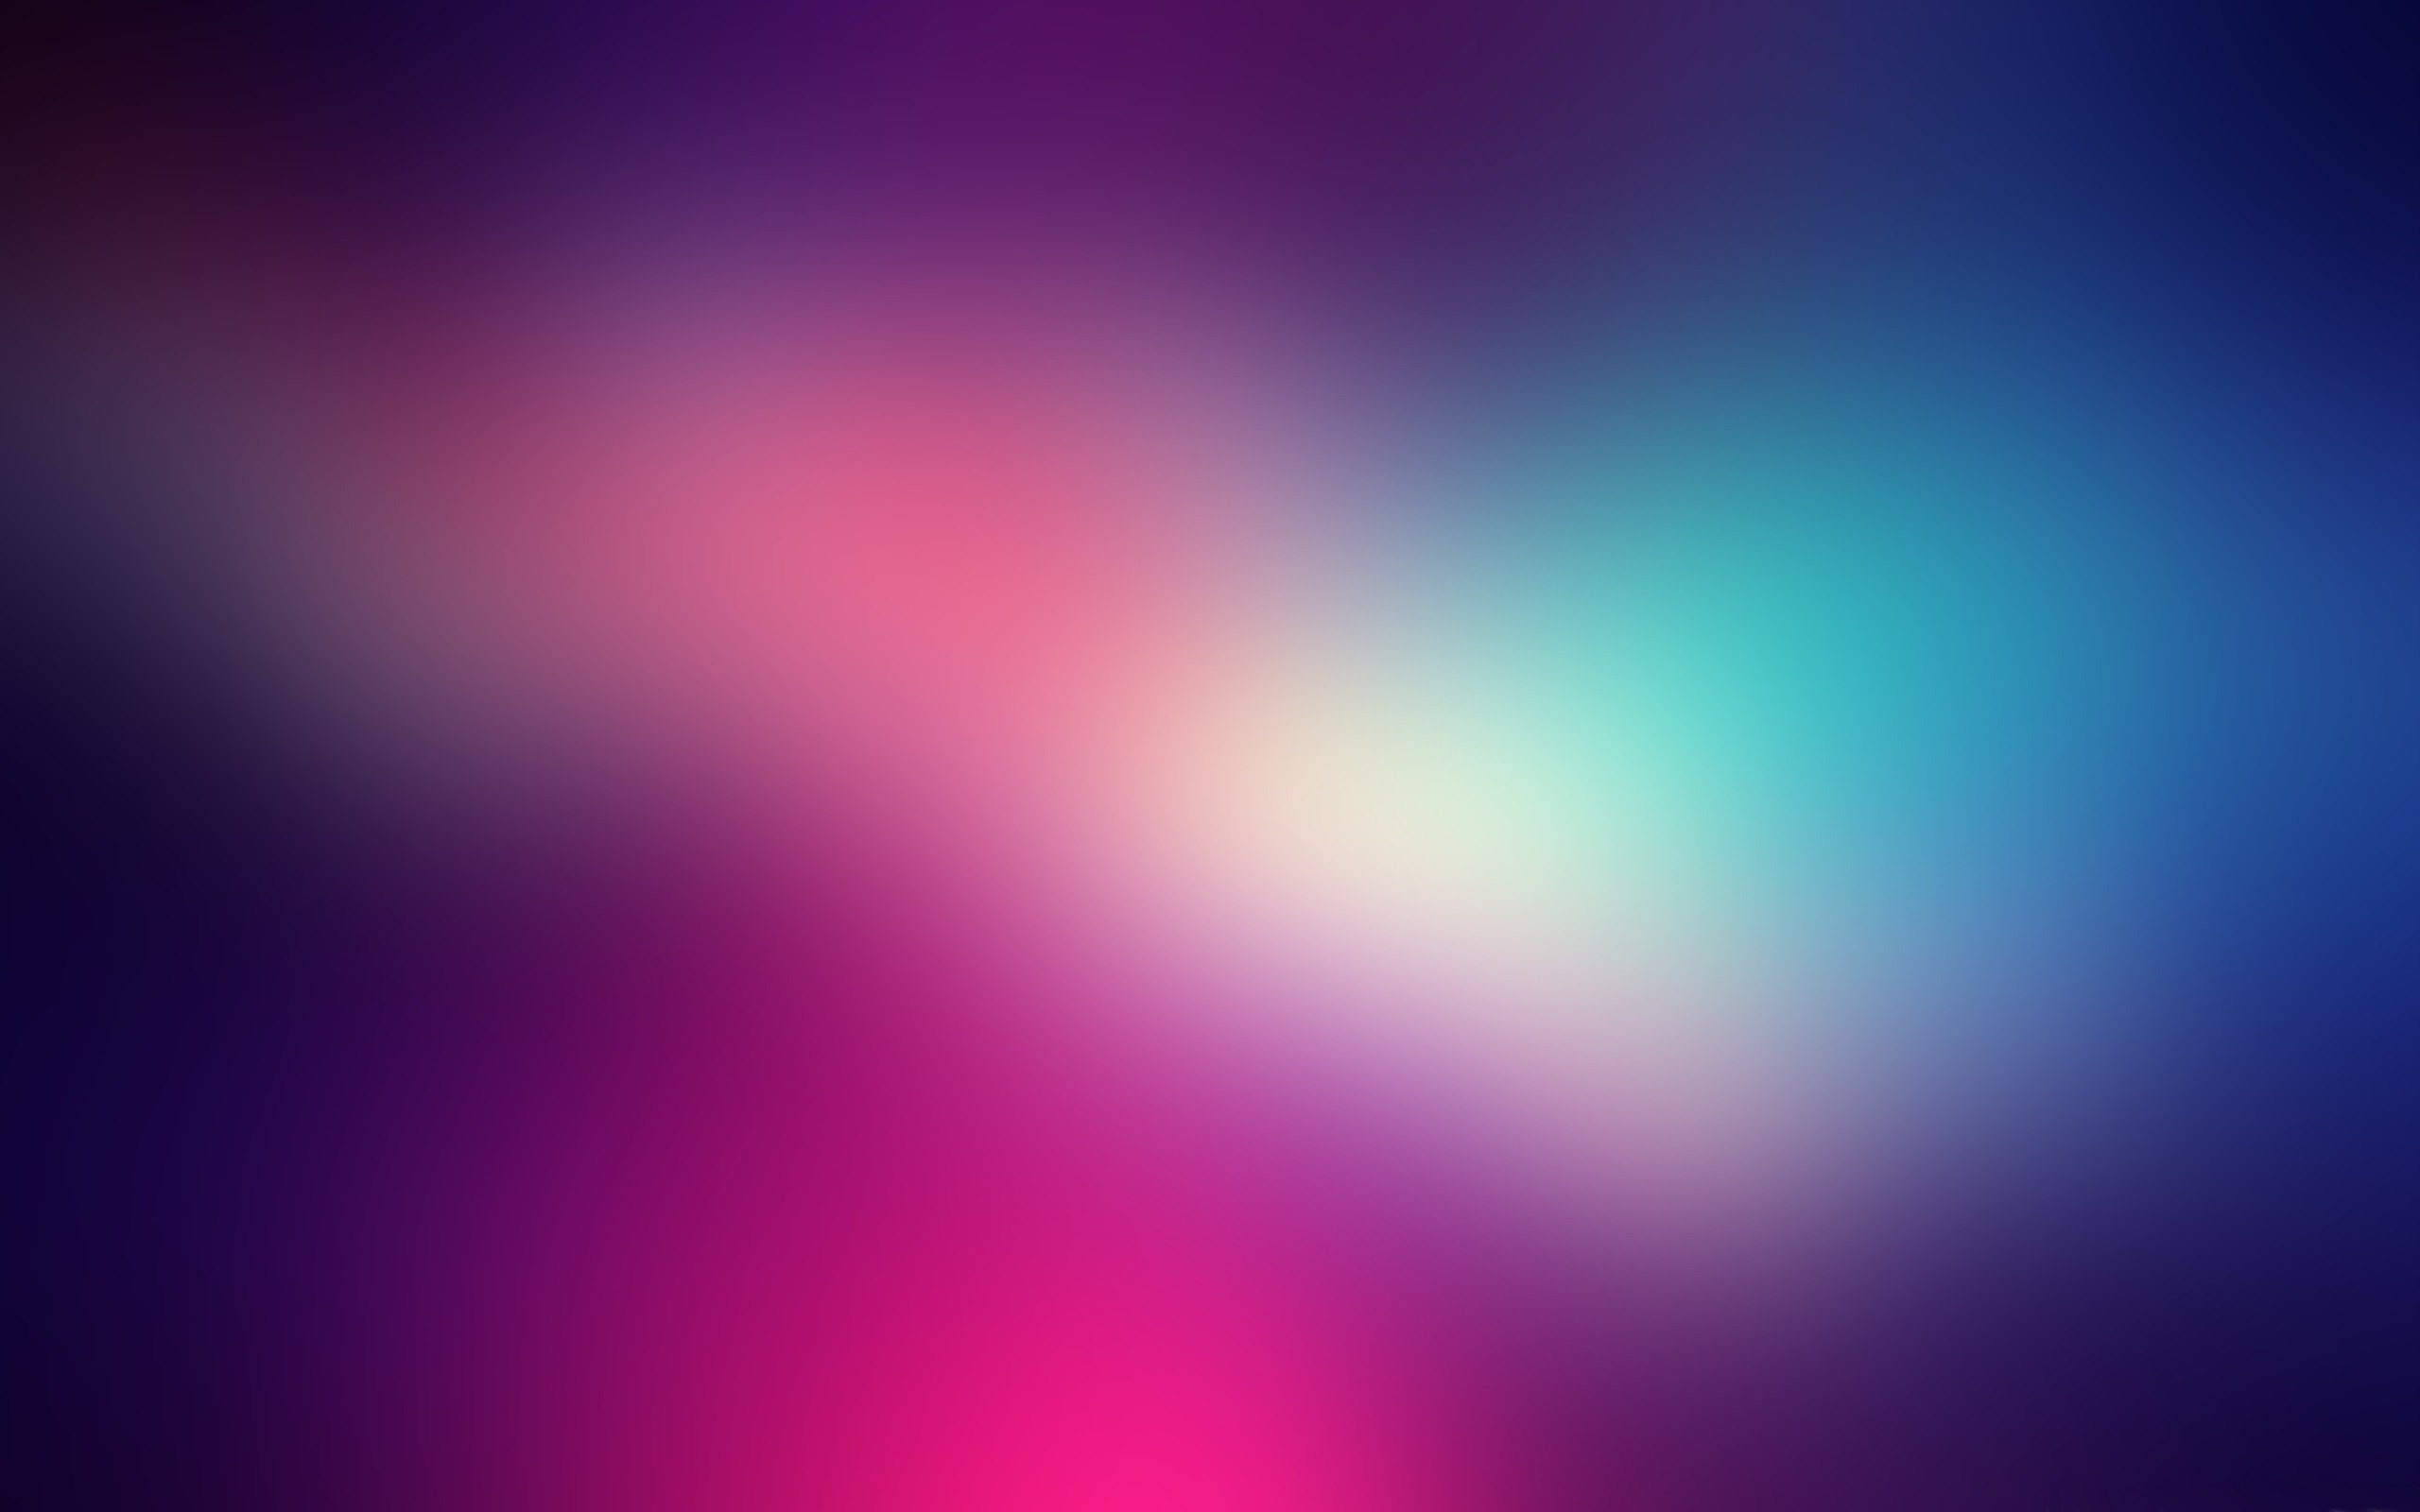 IOS Abstract Wallpaper